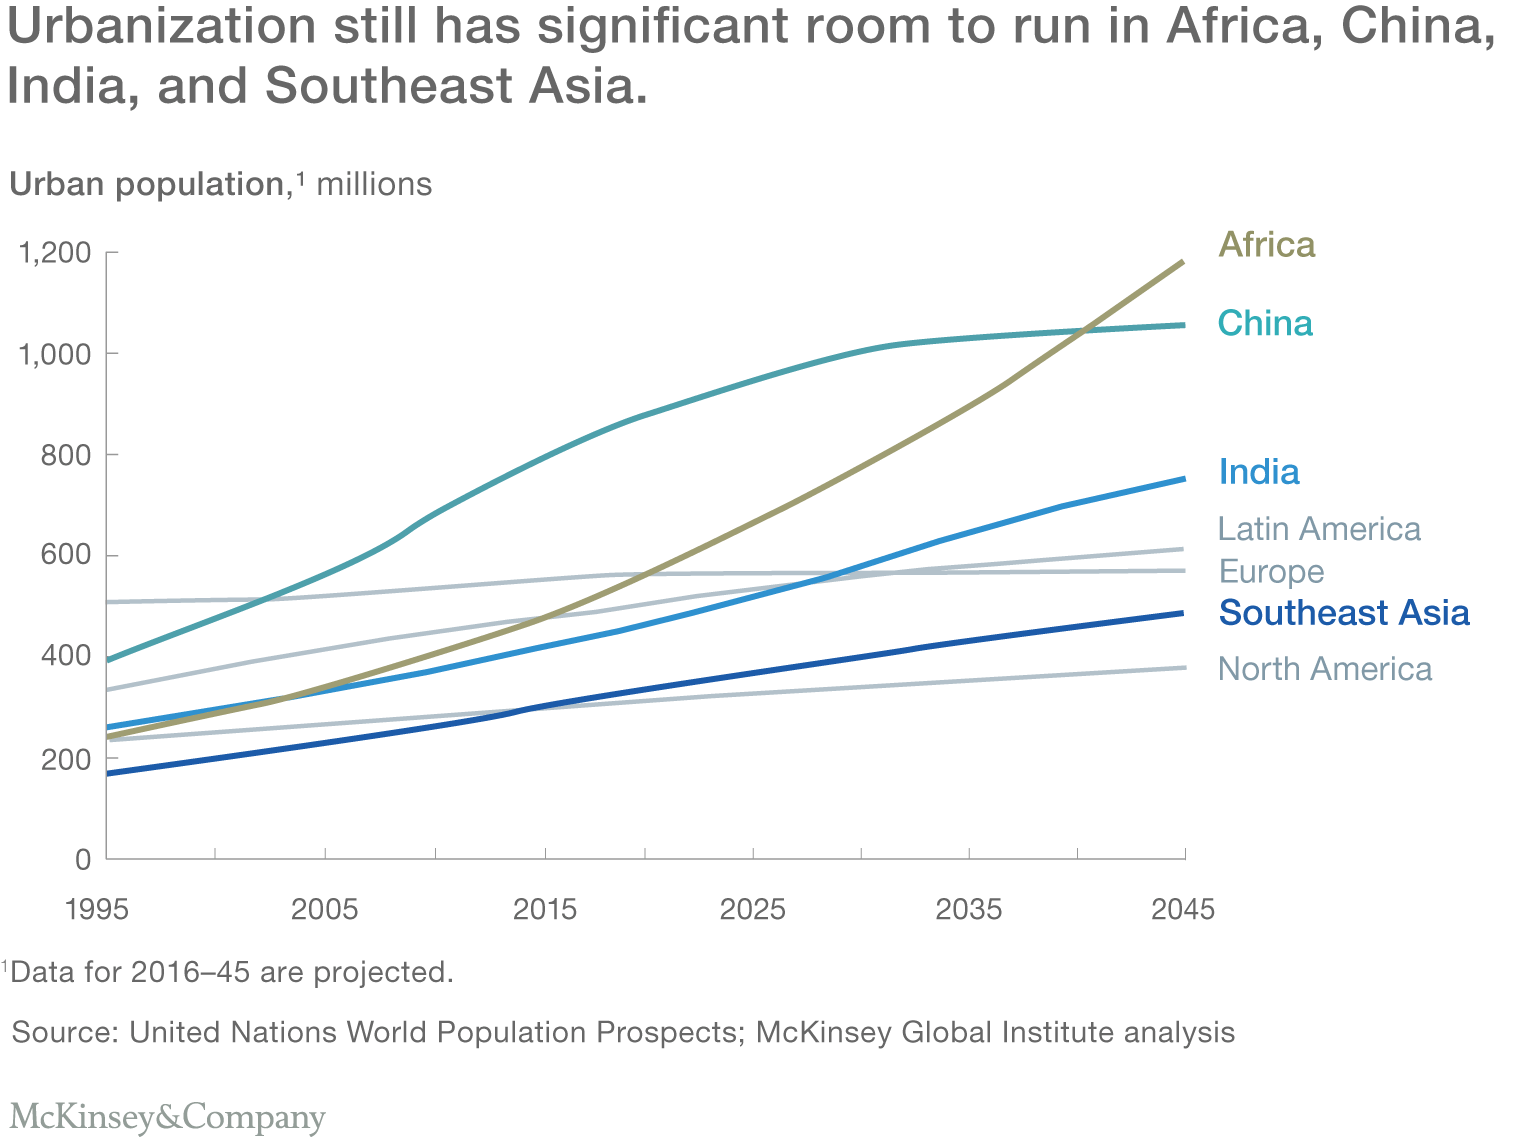 Urbanization still has significant room to run in Africa, China, India, and Southeast